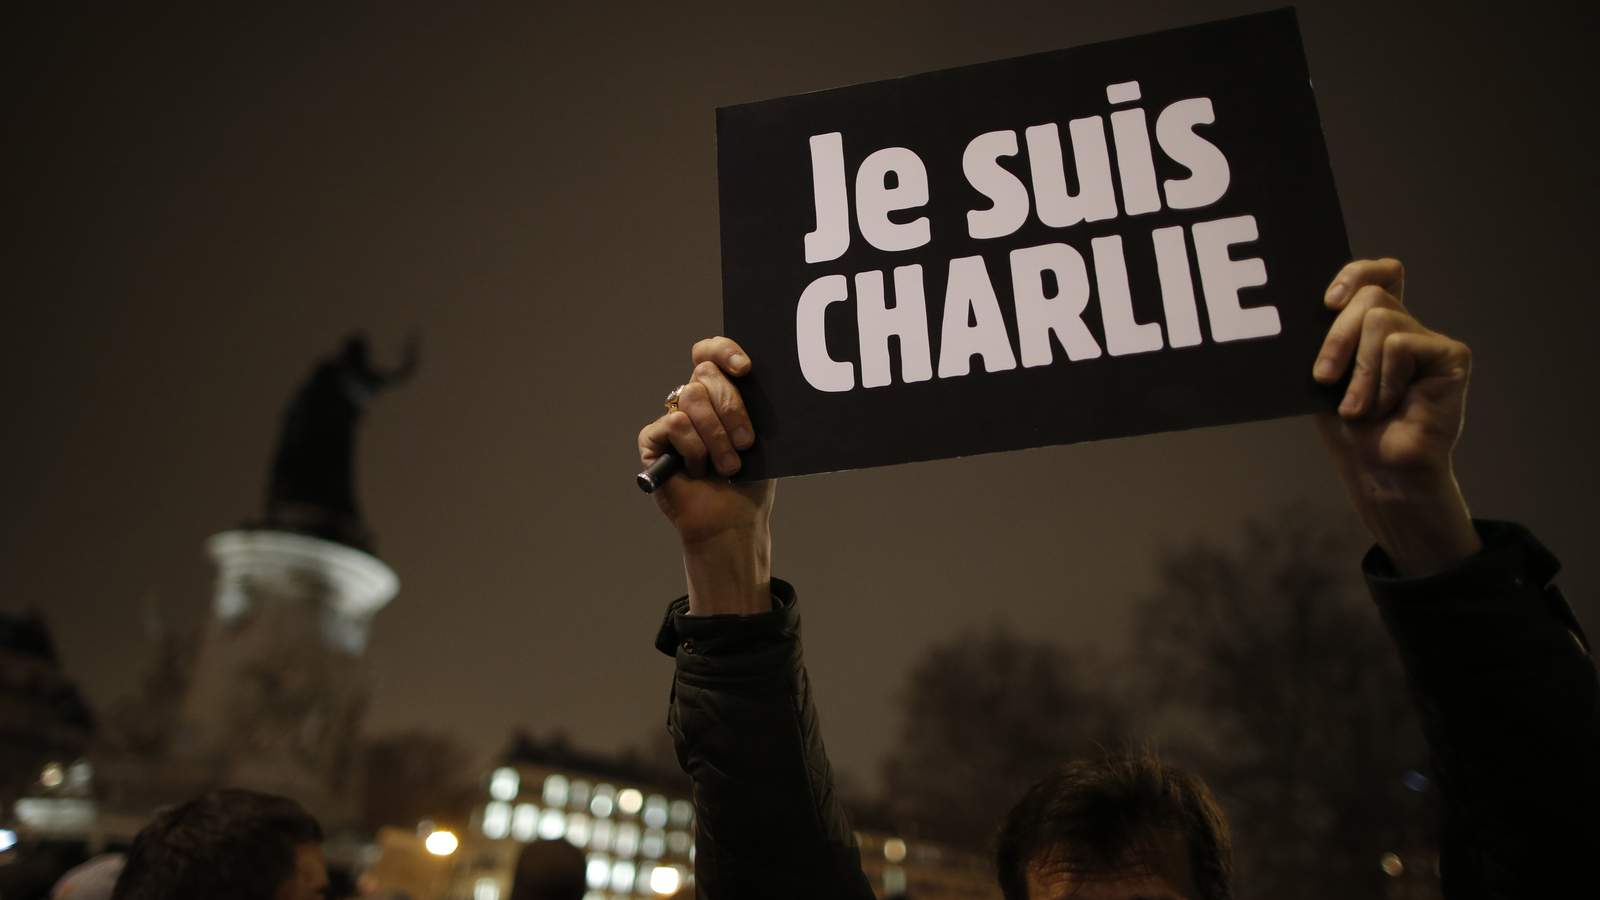 'Je Suis Charlie' – Our Fight For Freedom